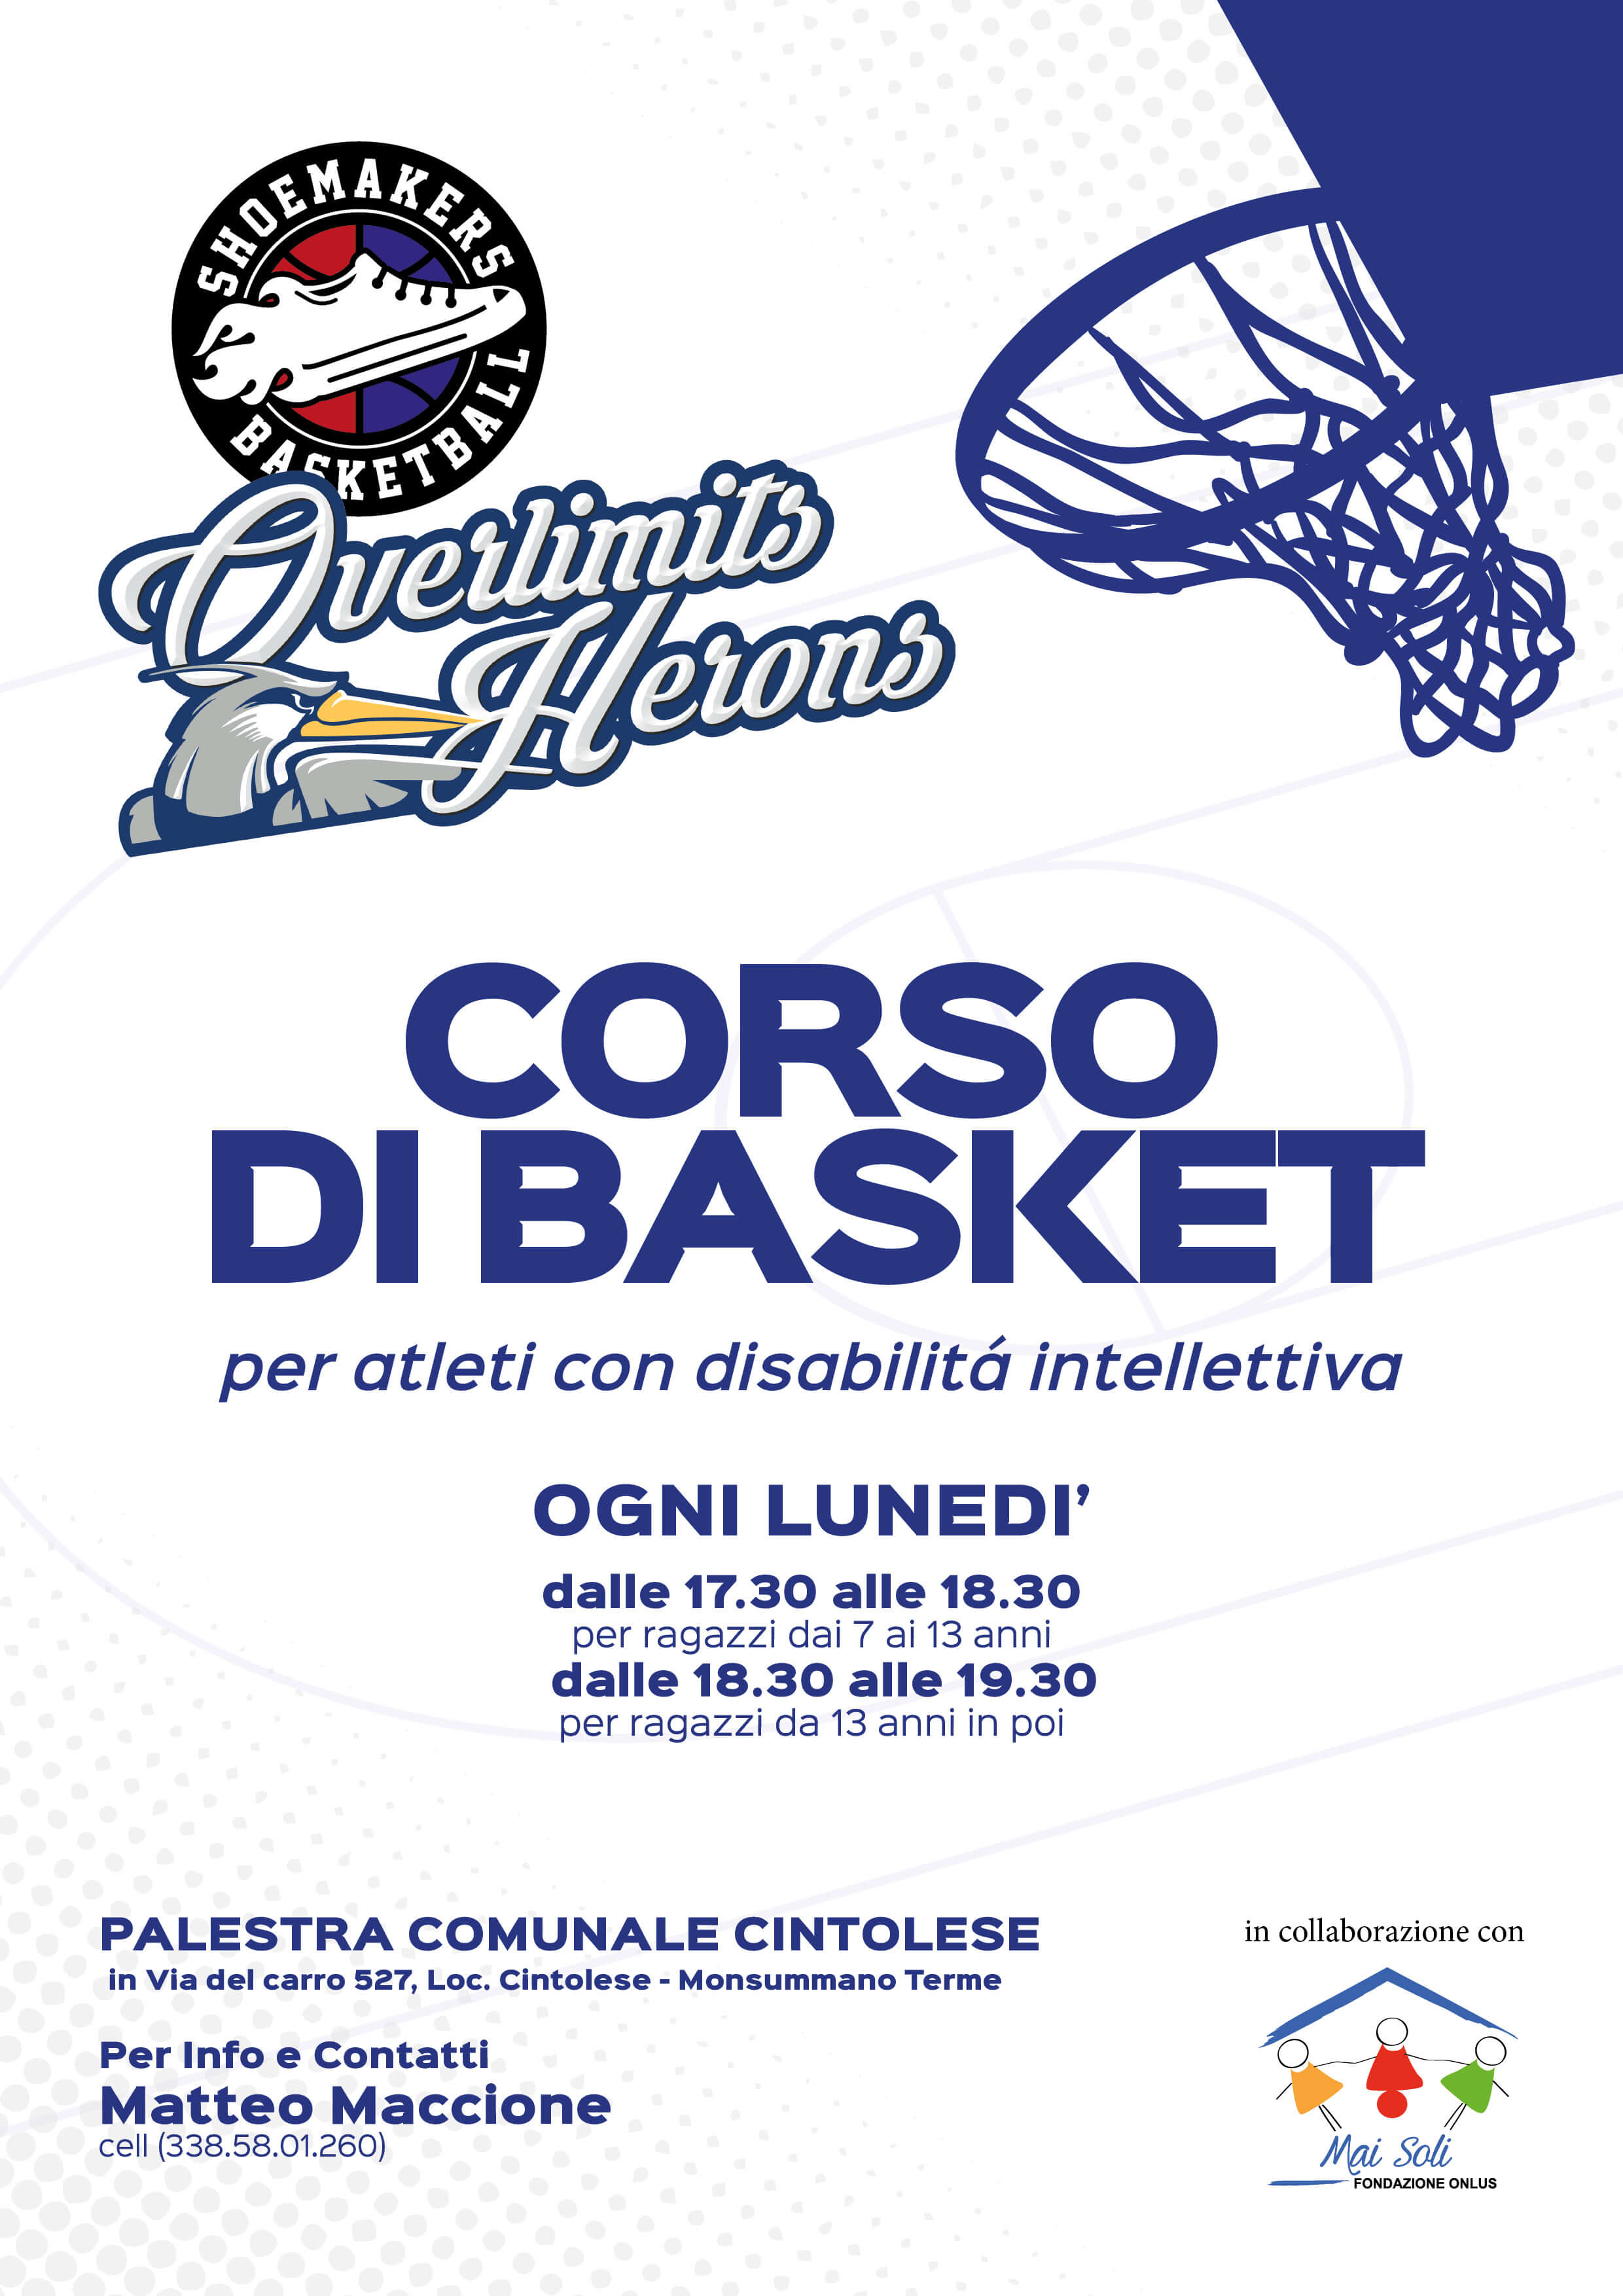 Corsi di Basket Shoemakers Overlimits 2019